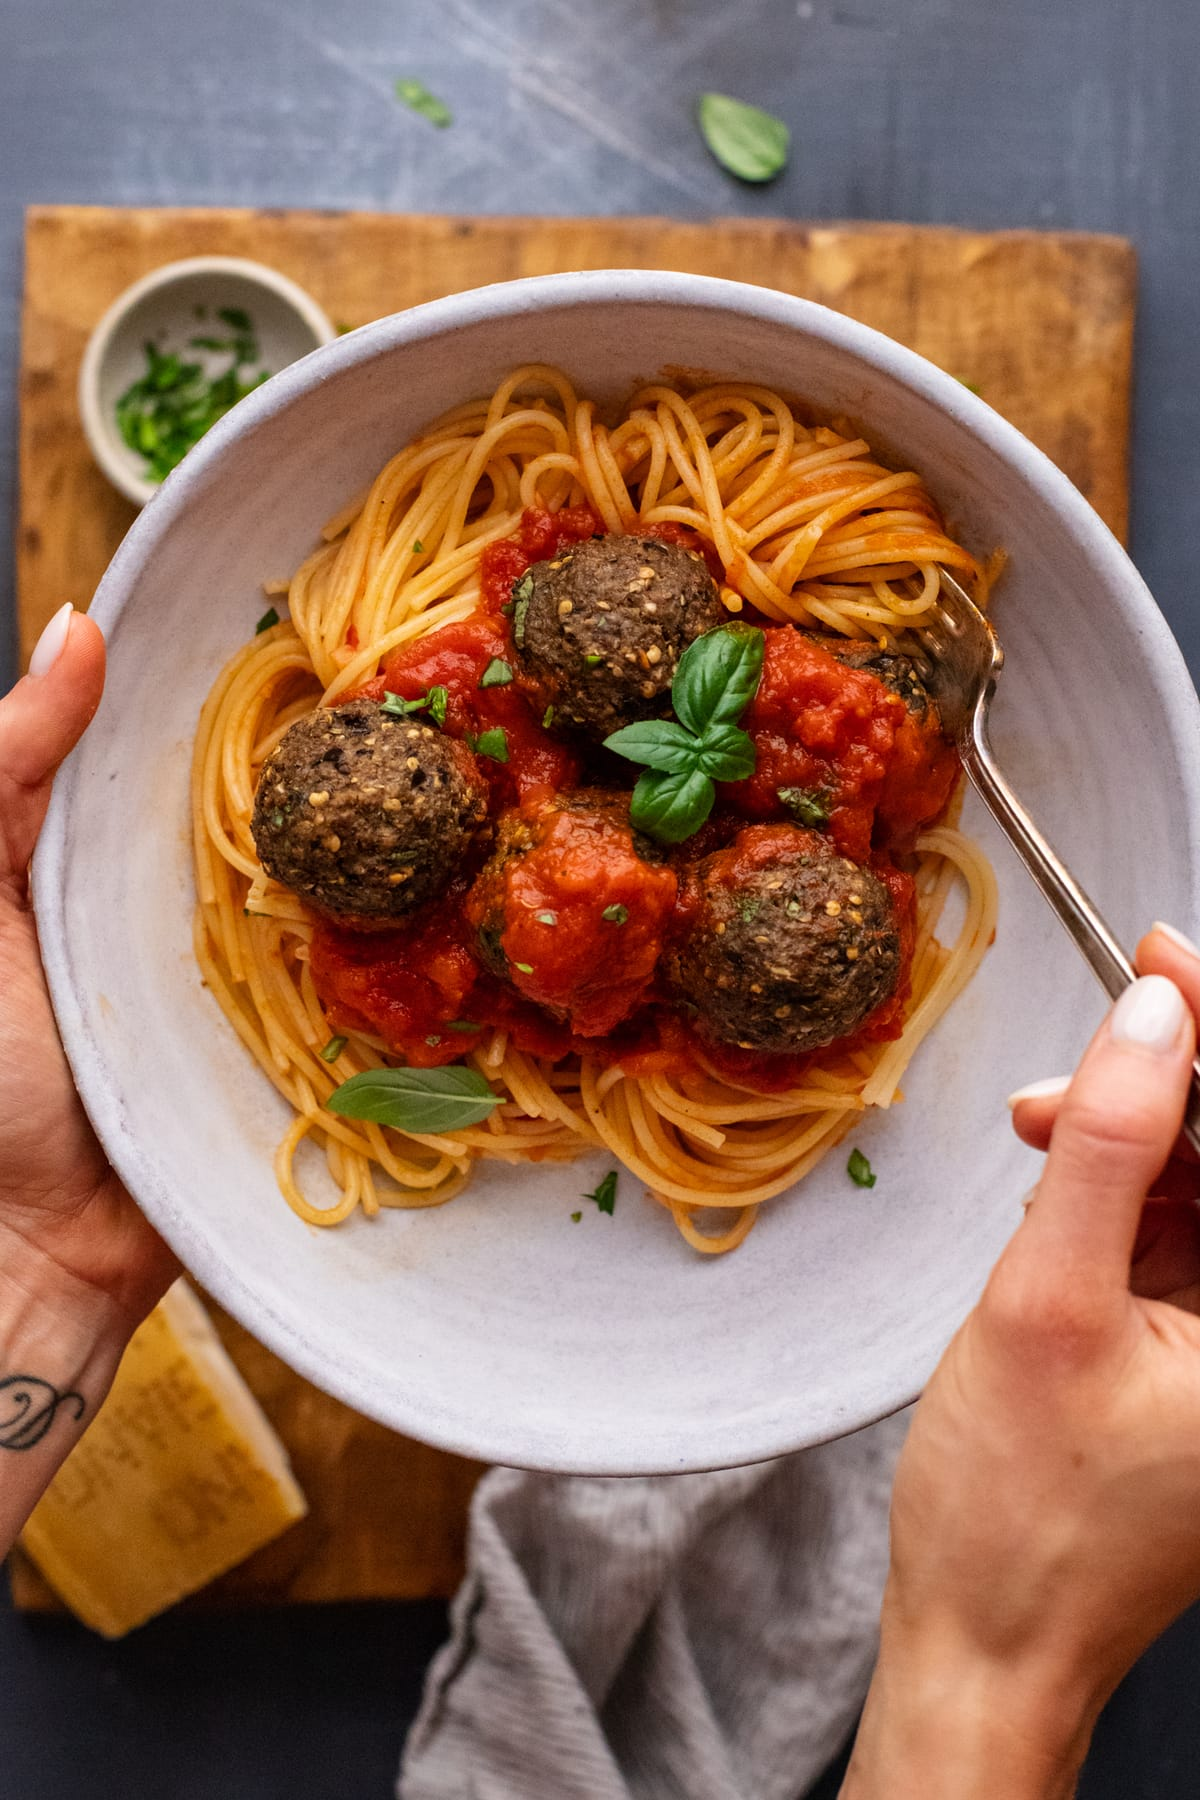 hand holding white bowl with spaghetti and eggplant meatballs with red tomato sauce in it over a brown wooden board.